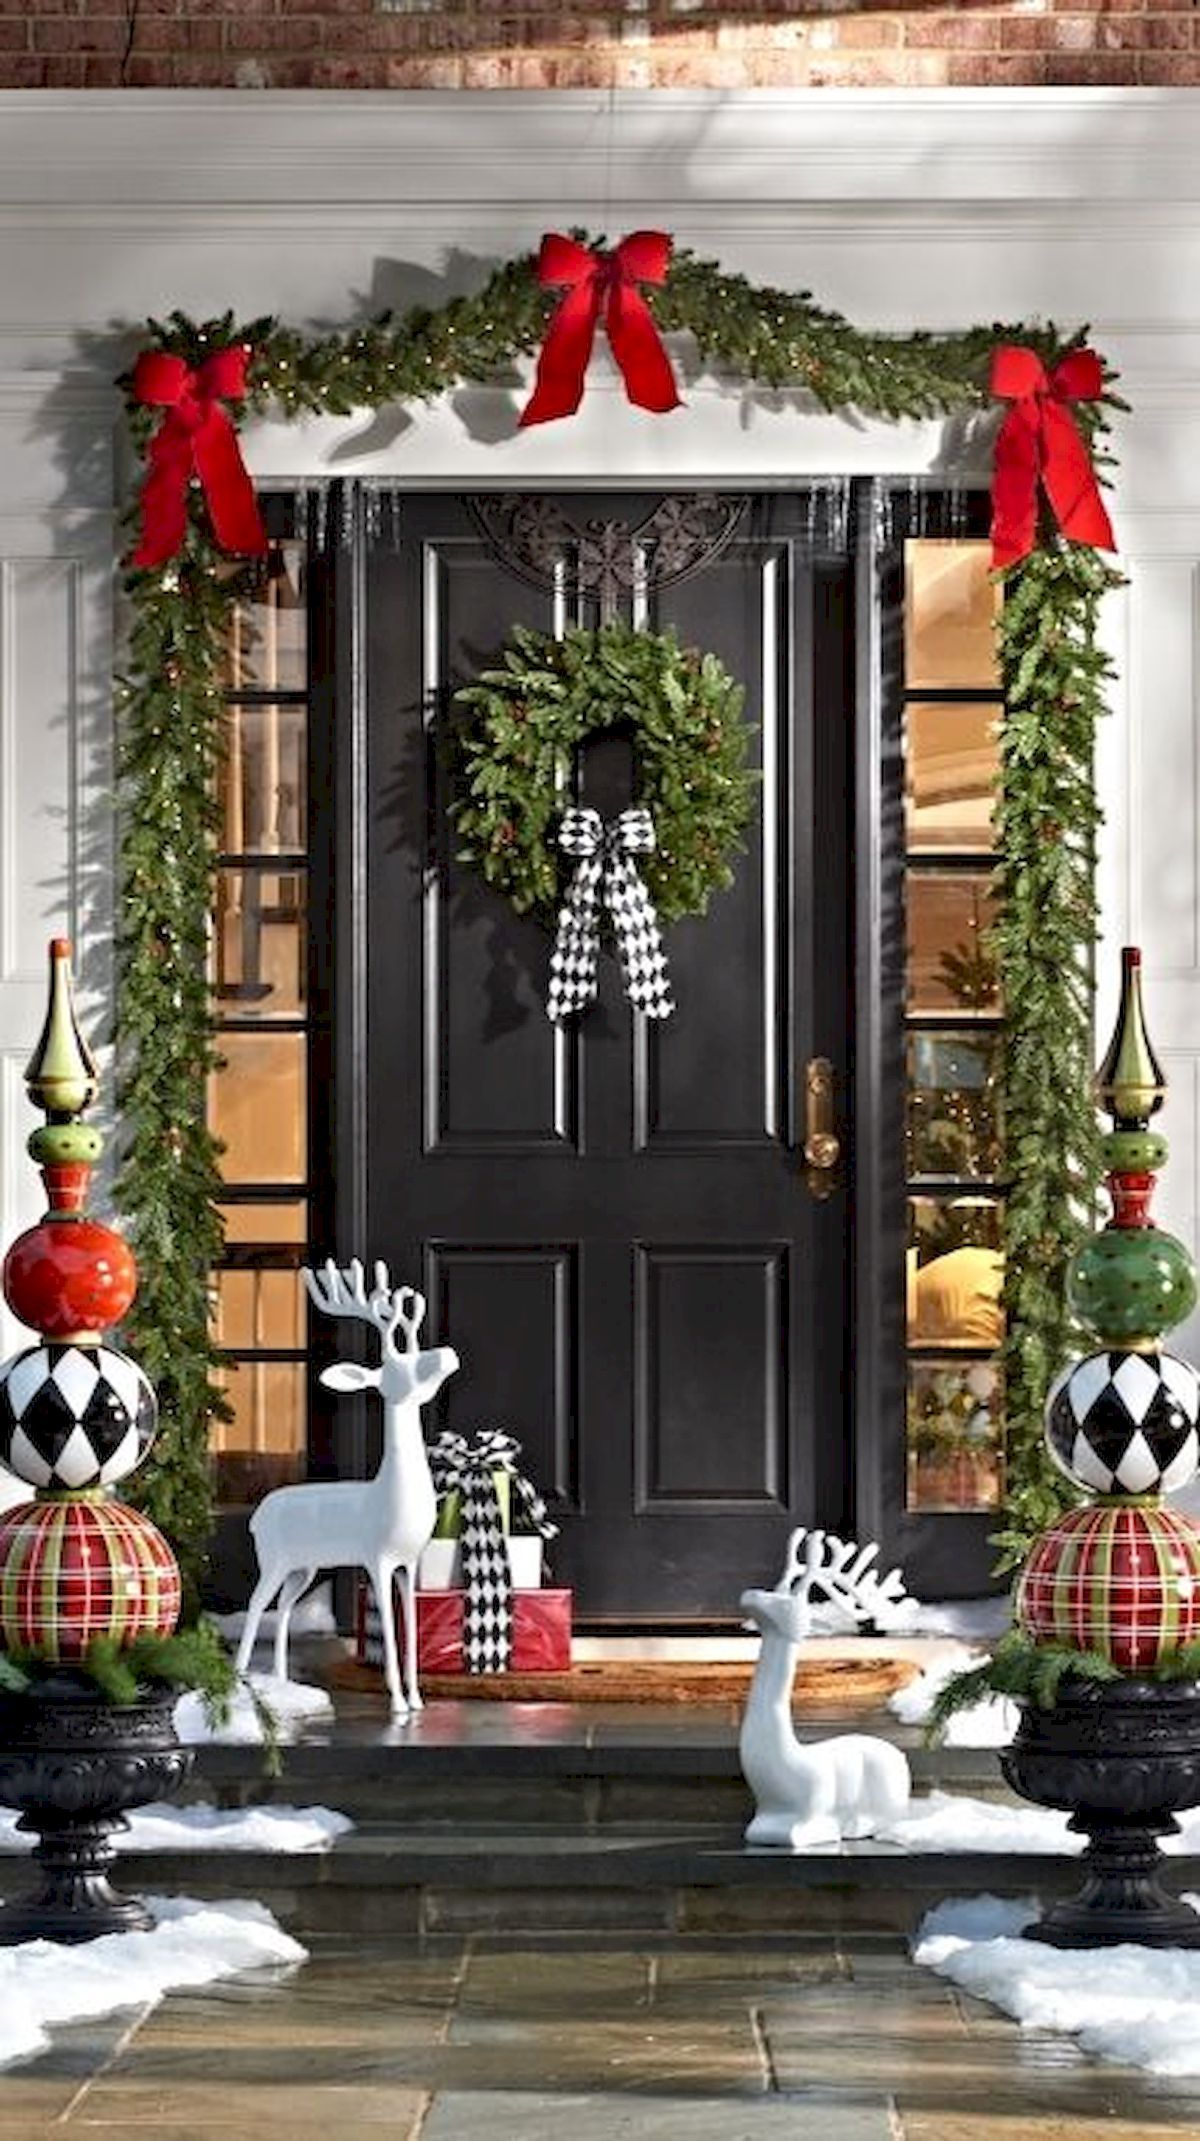 50 Stunning Front Porch Christmas Lights Decorations Ideas (20)